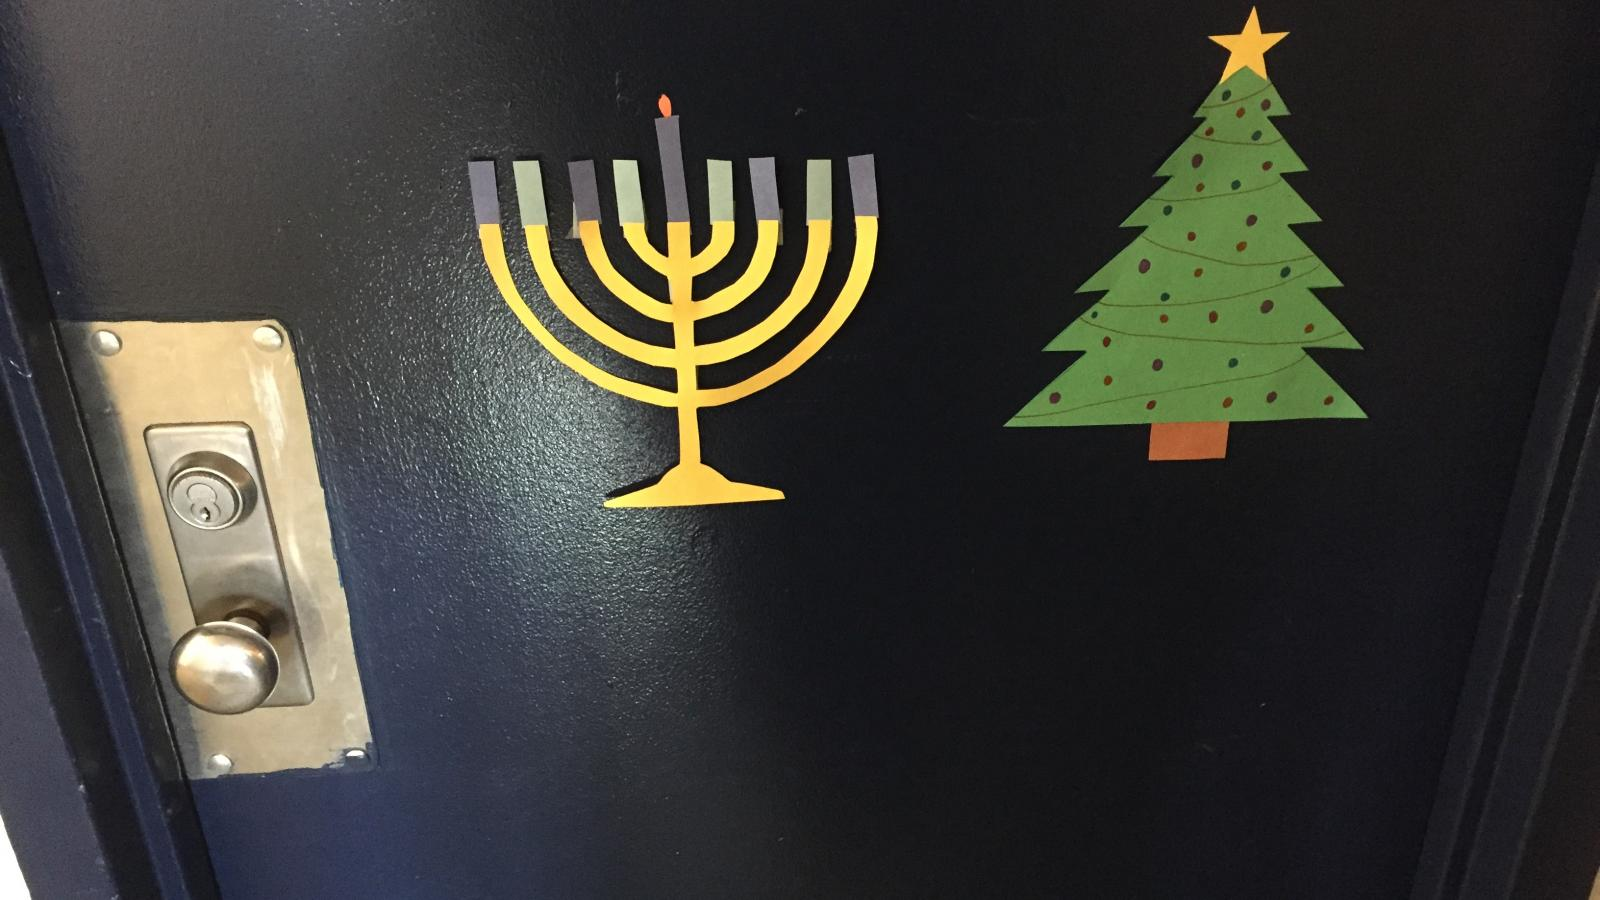 Ohio State University Campus Religion: Menorah and Christmas Tree in Taylor Tower